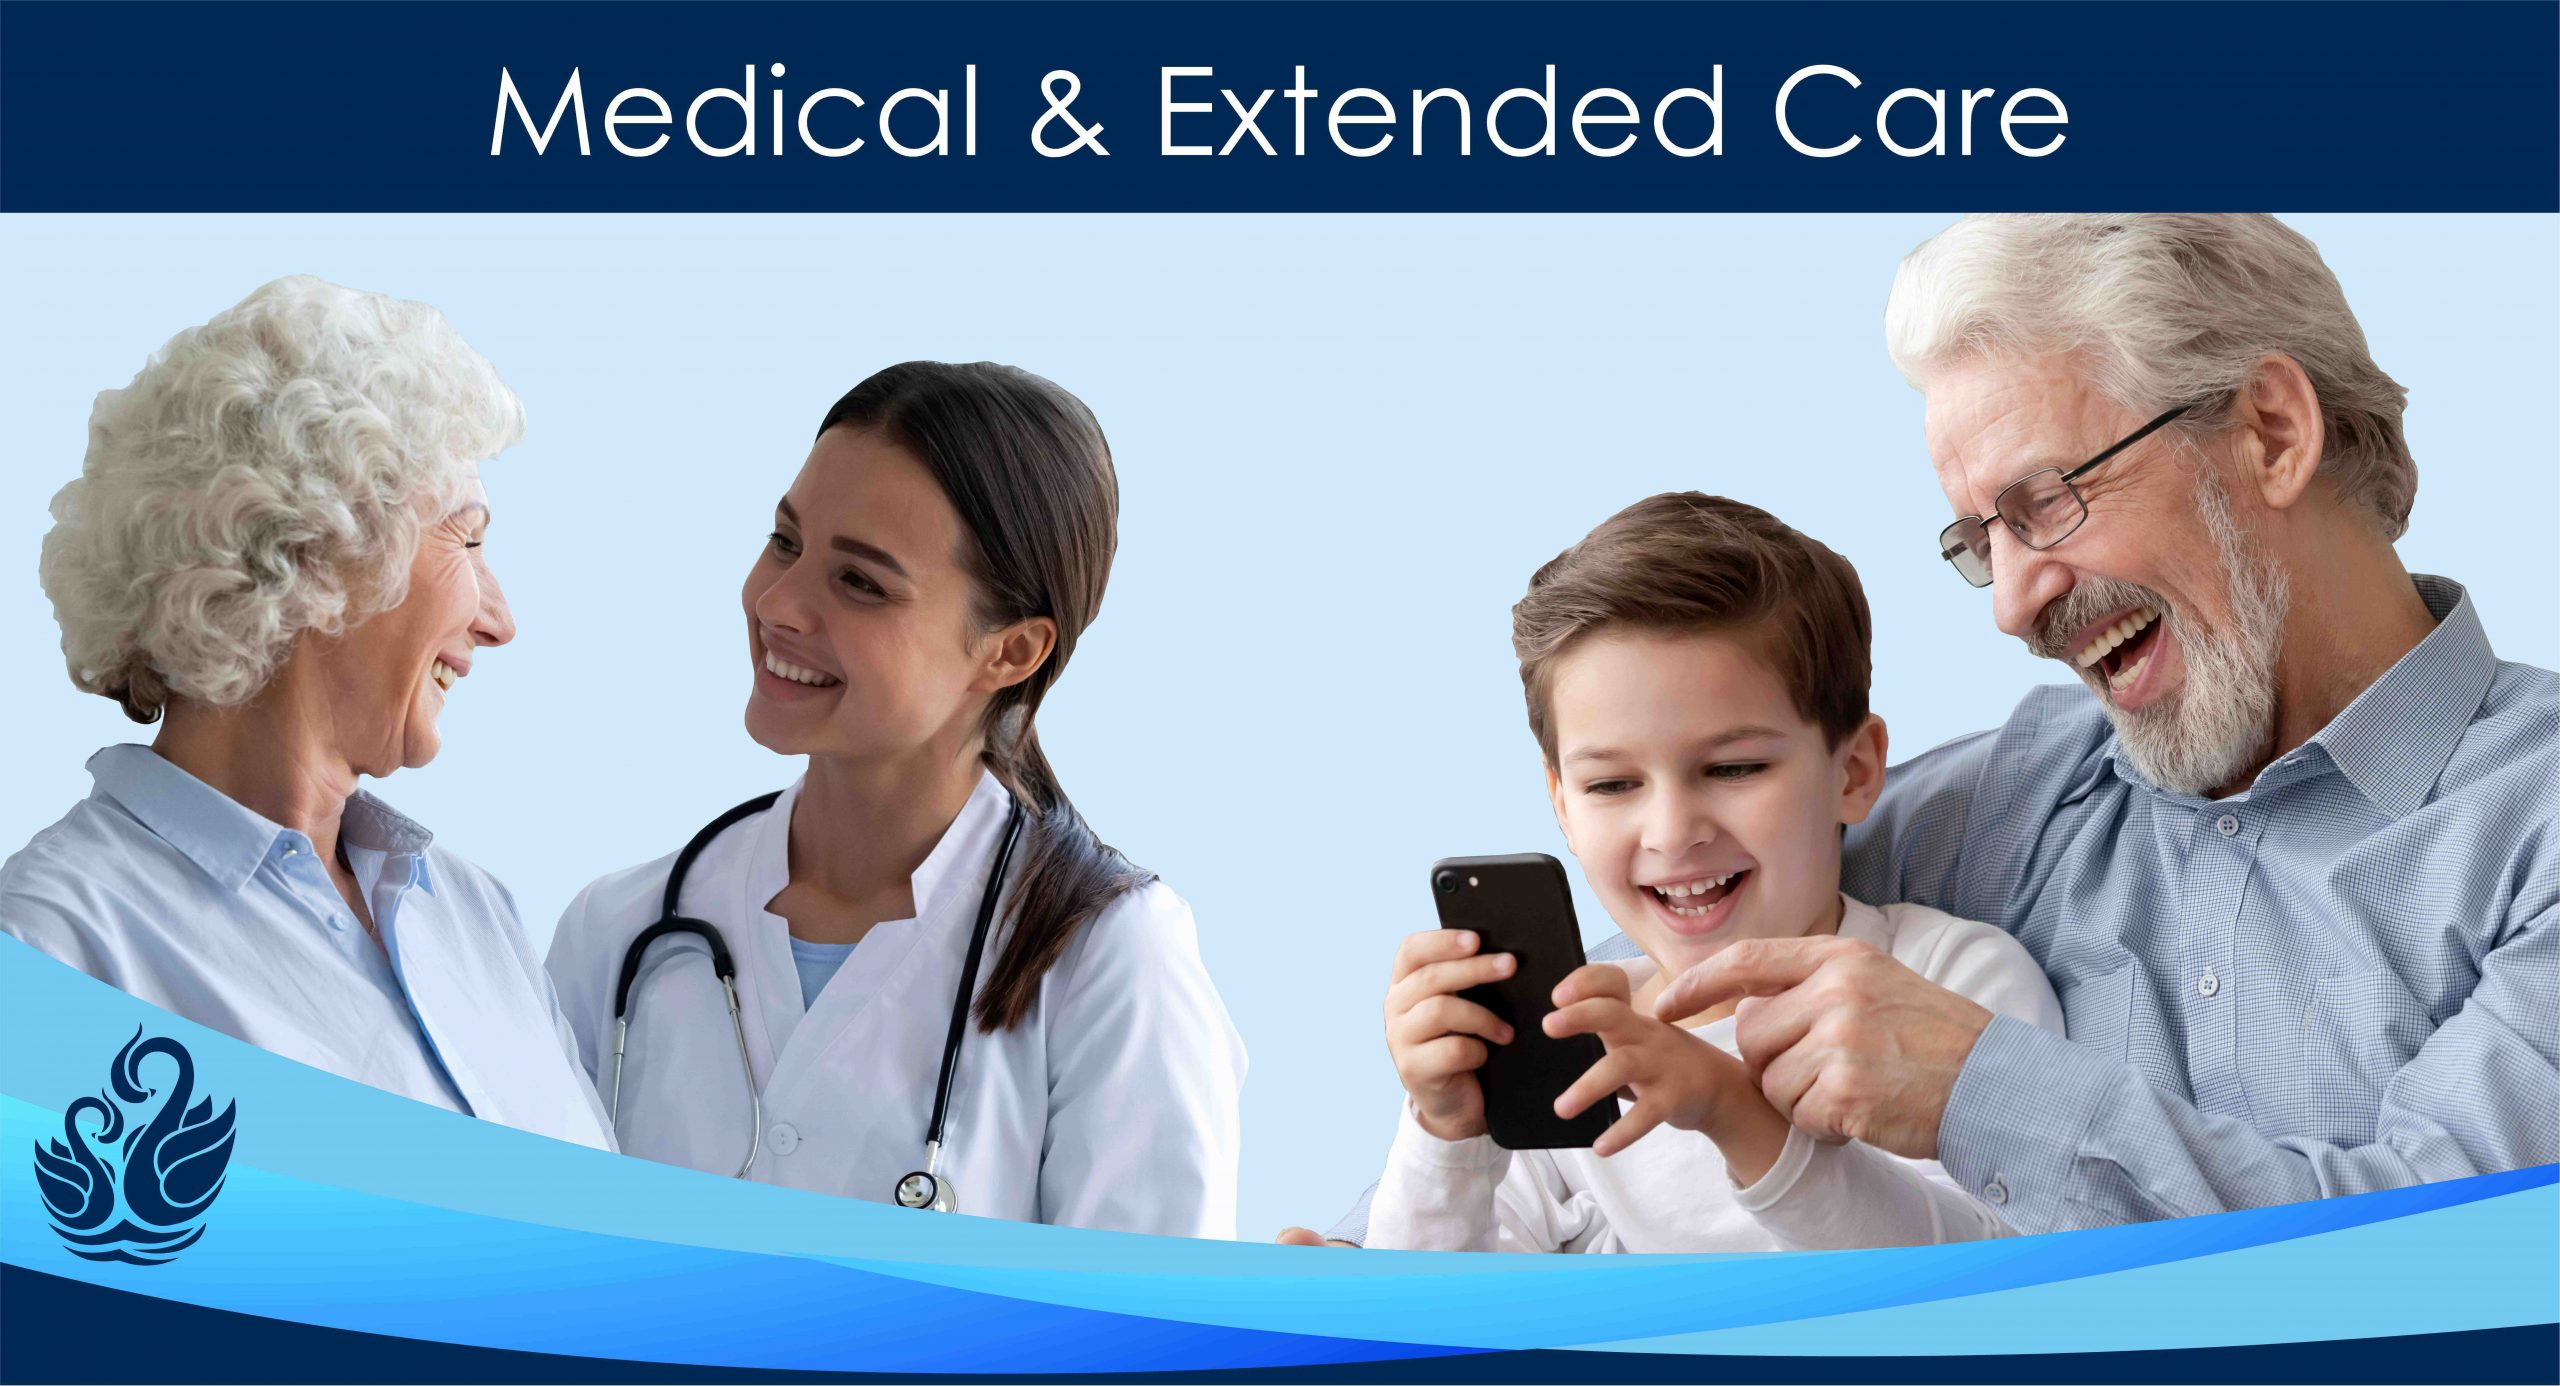 Medical and extended care